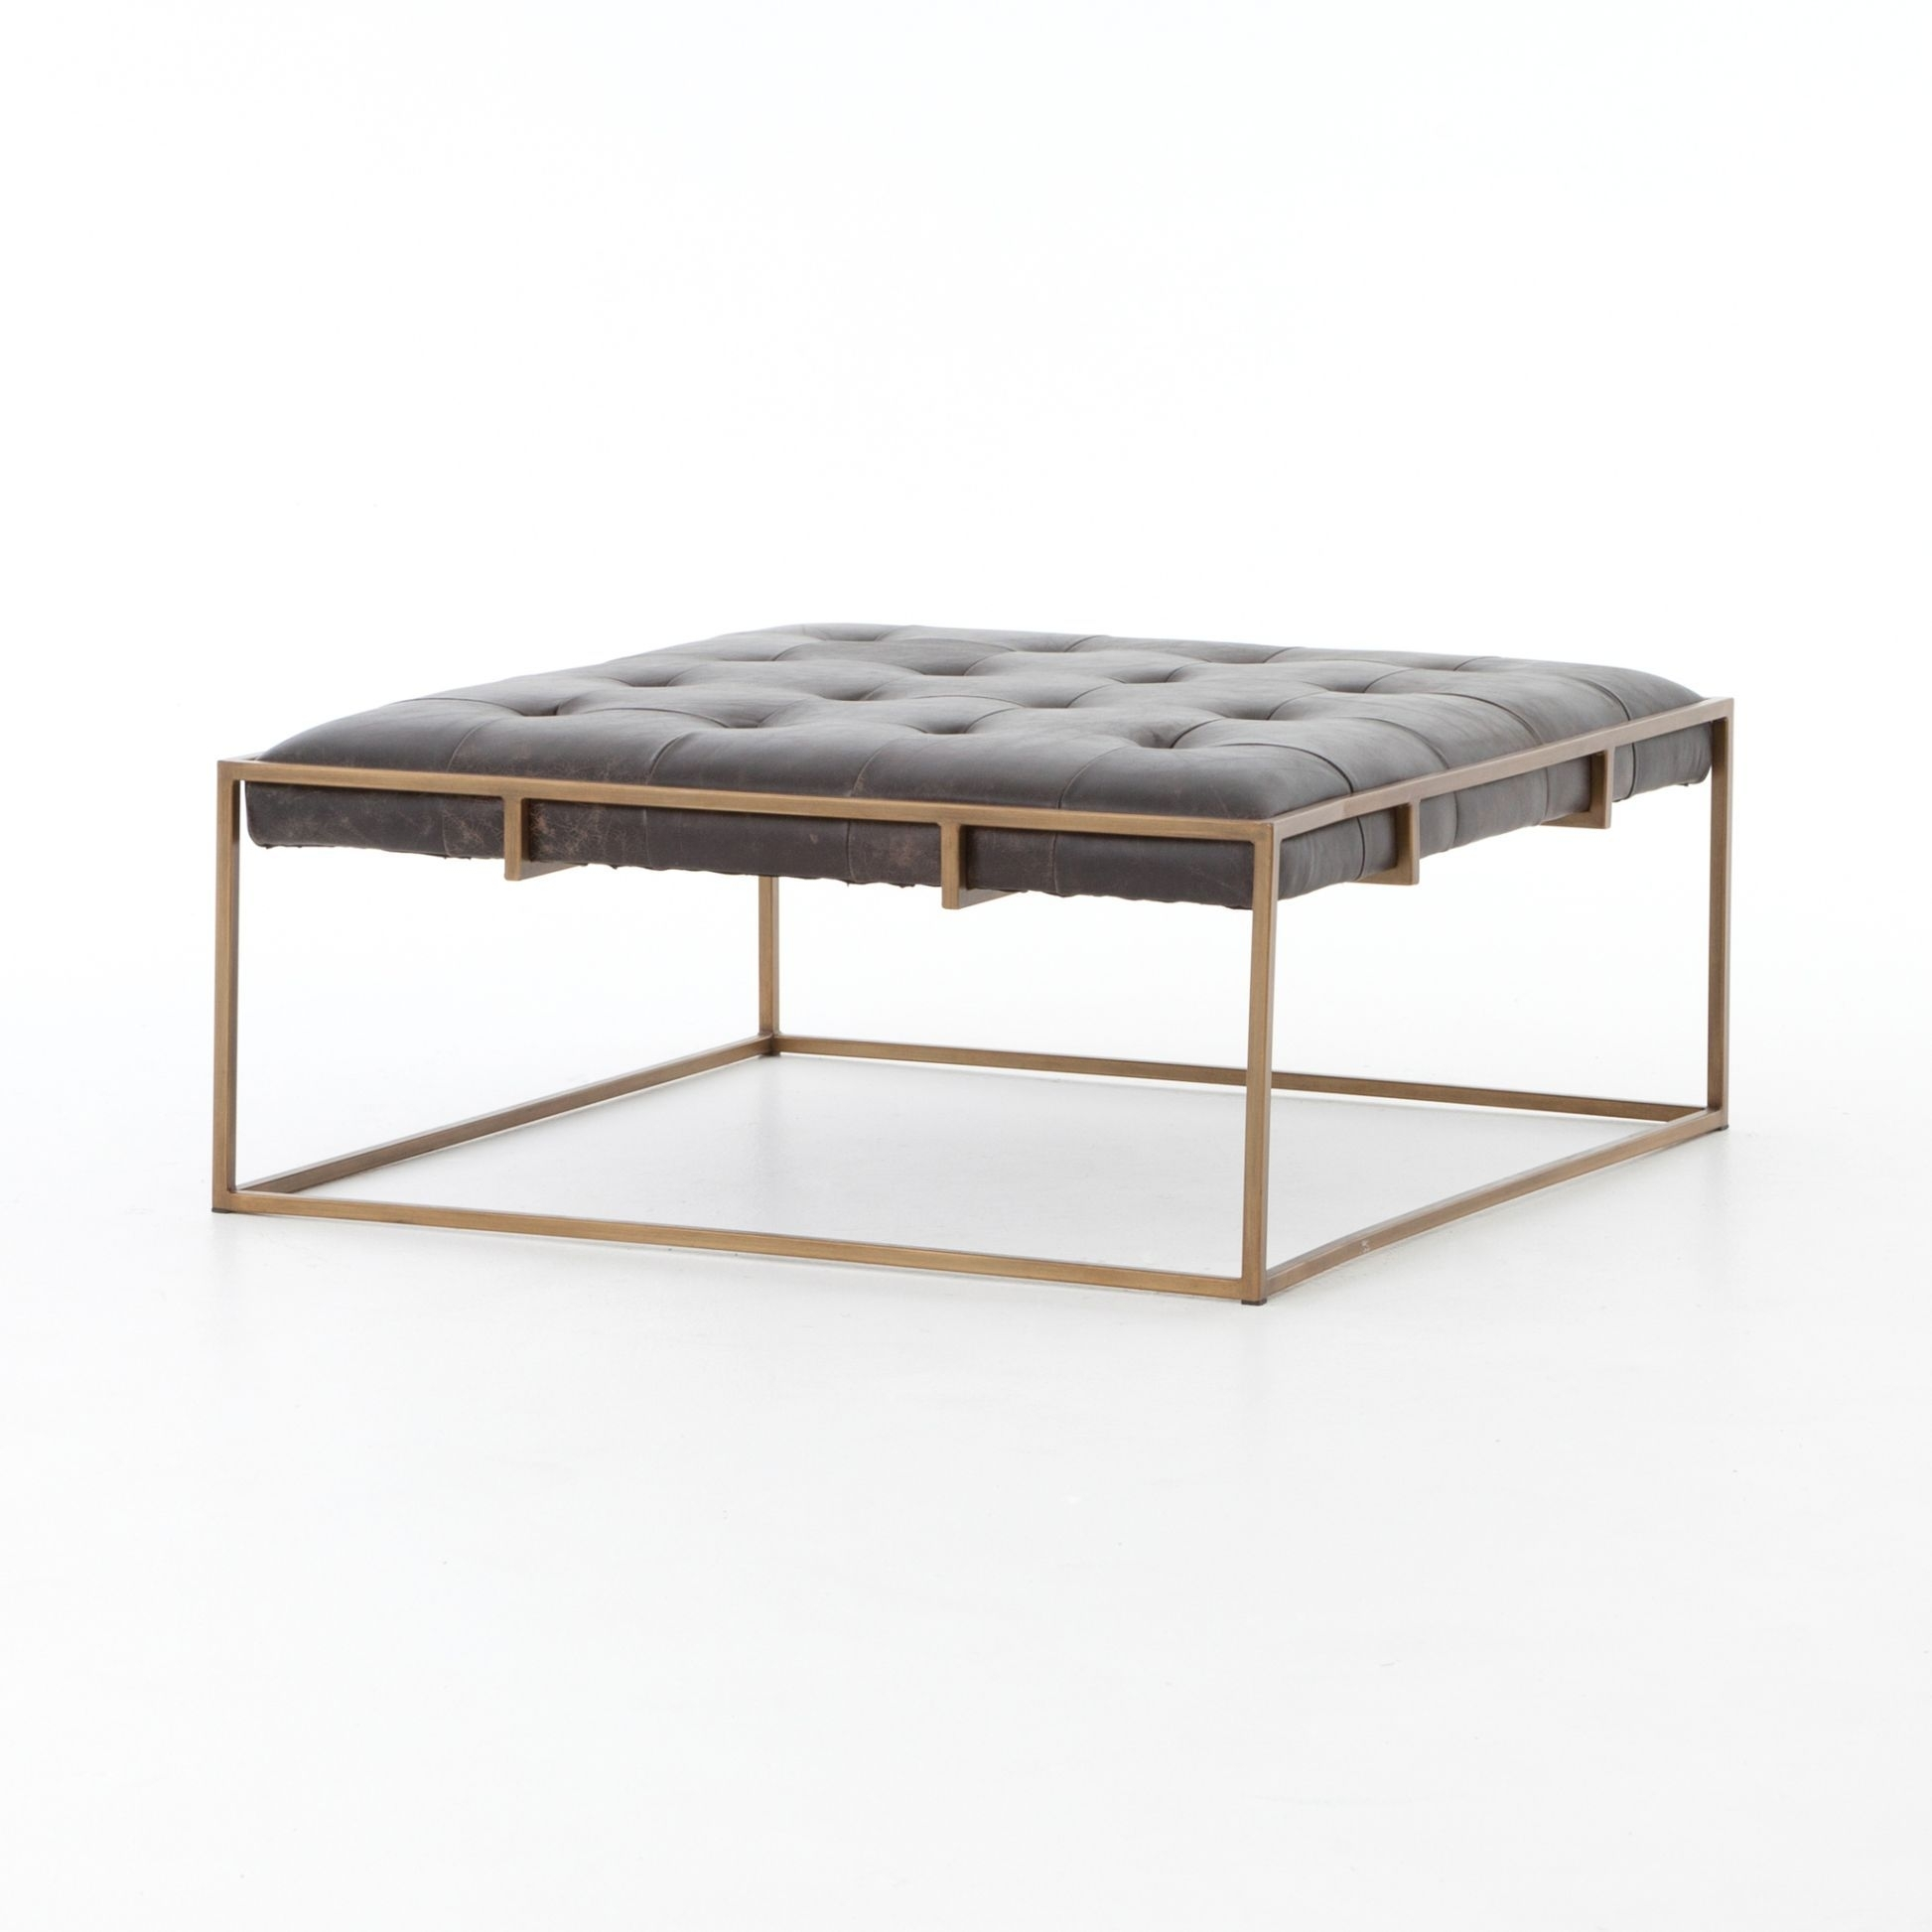 Square Tufted Leather Coffee Table Ottoman | Design | Pinterest regarding Rectangular Brass Finish and Glass Coffee Tables (Image 23 of 30)